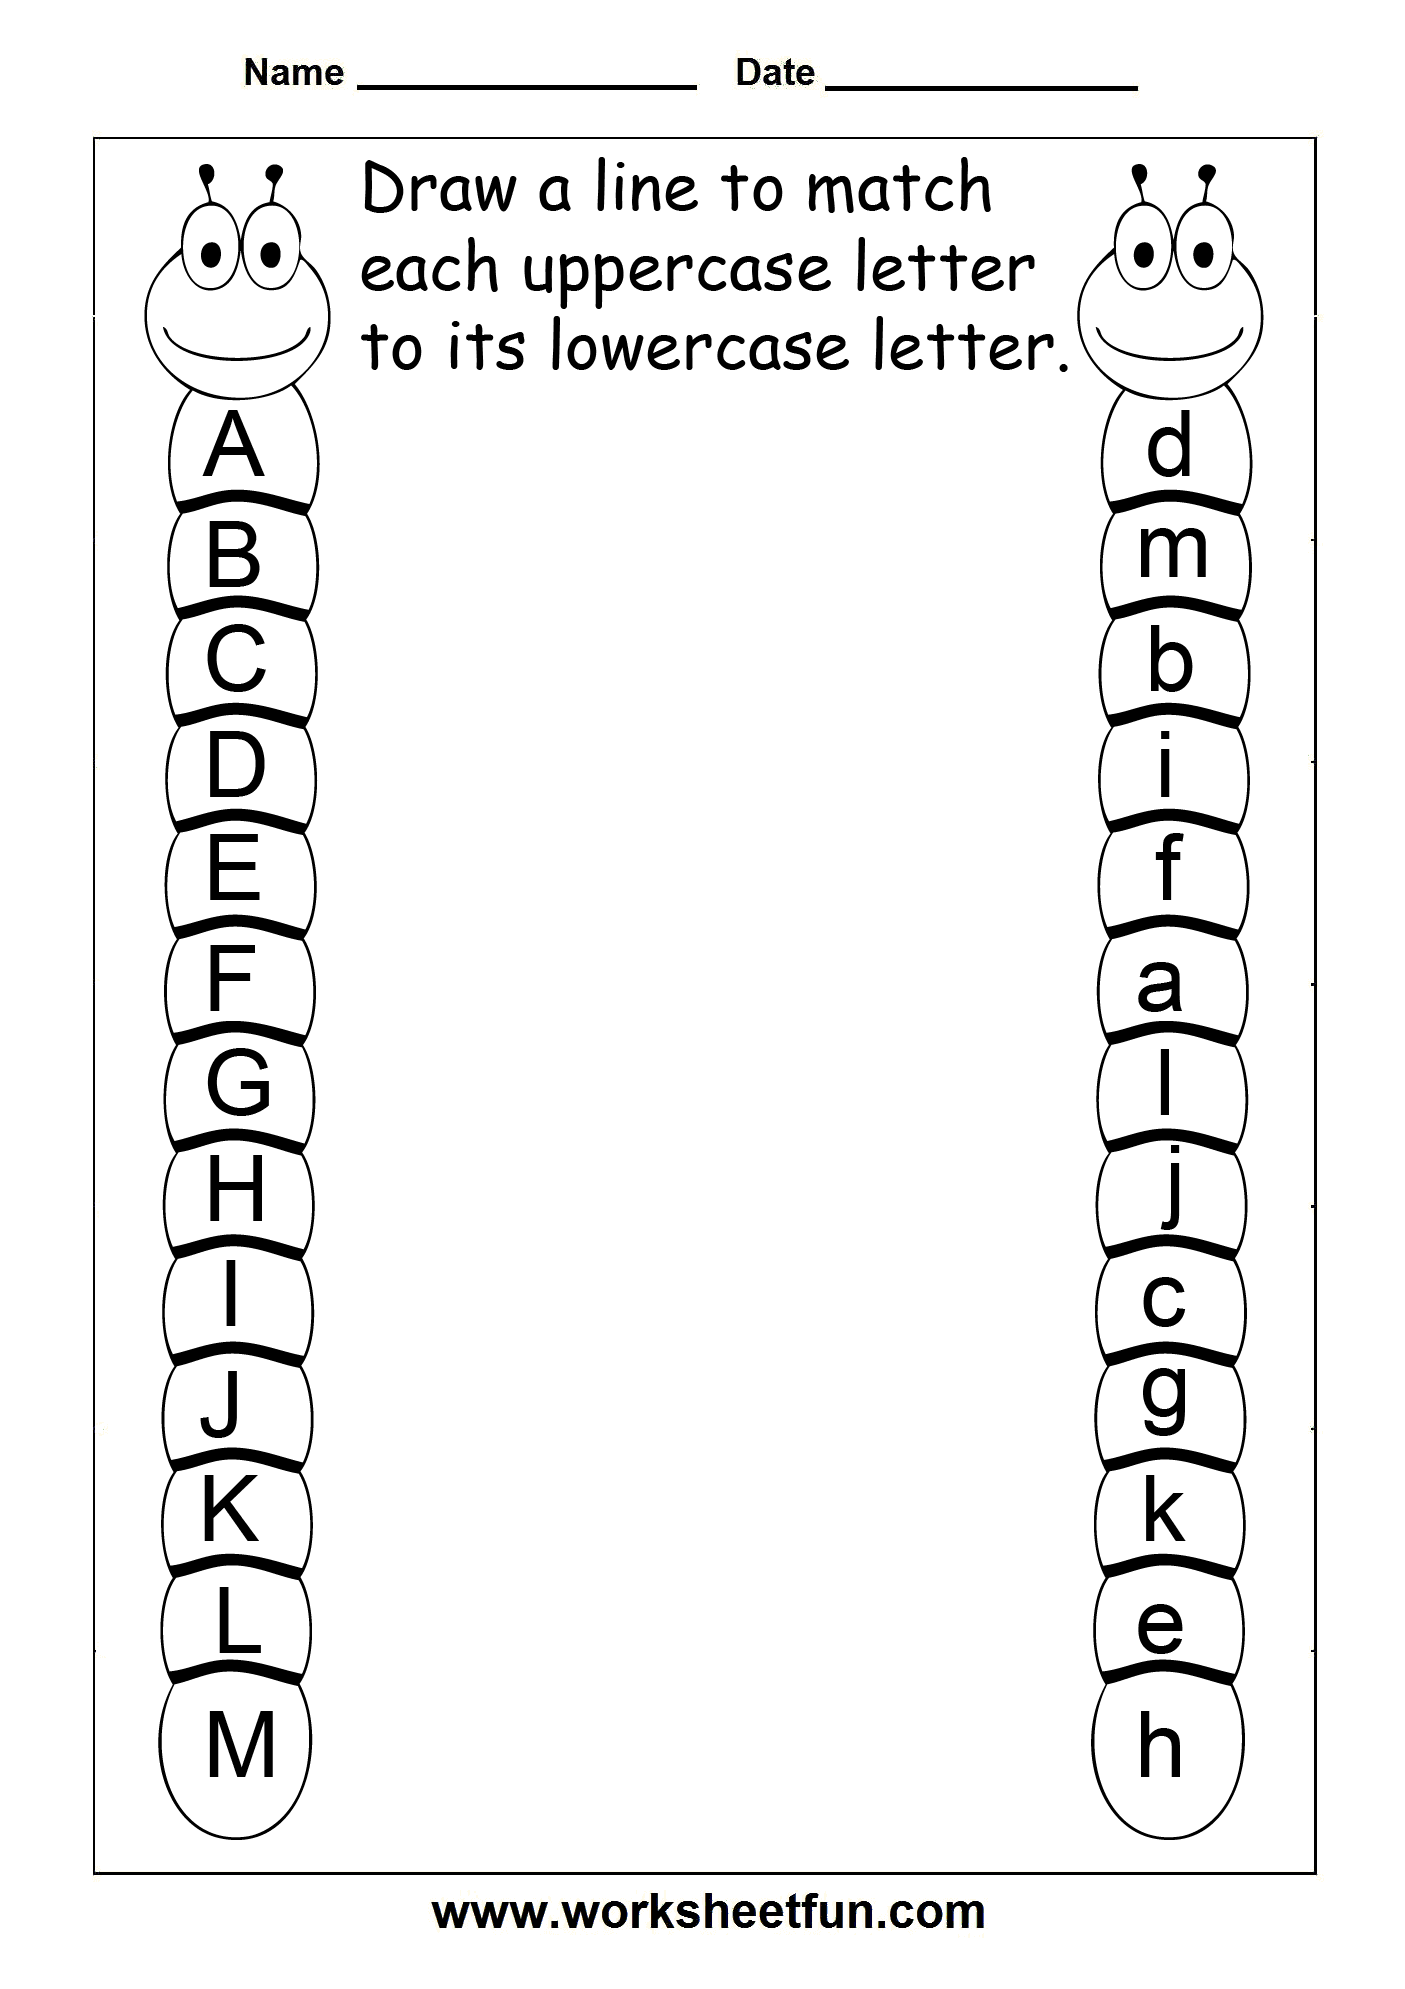 Printable Files For Tracing Upper And Lowercase